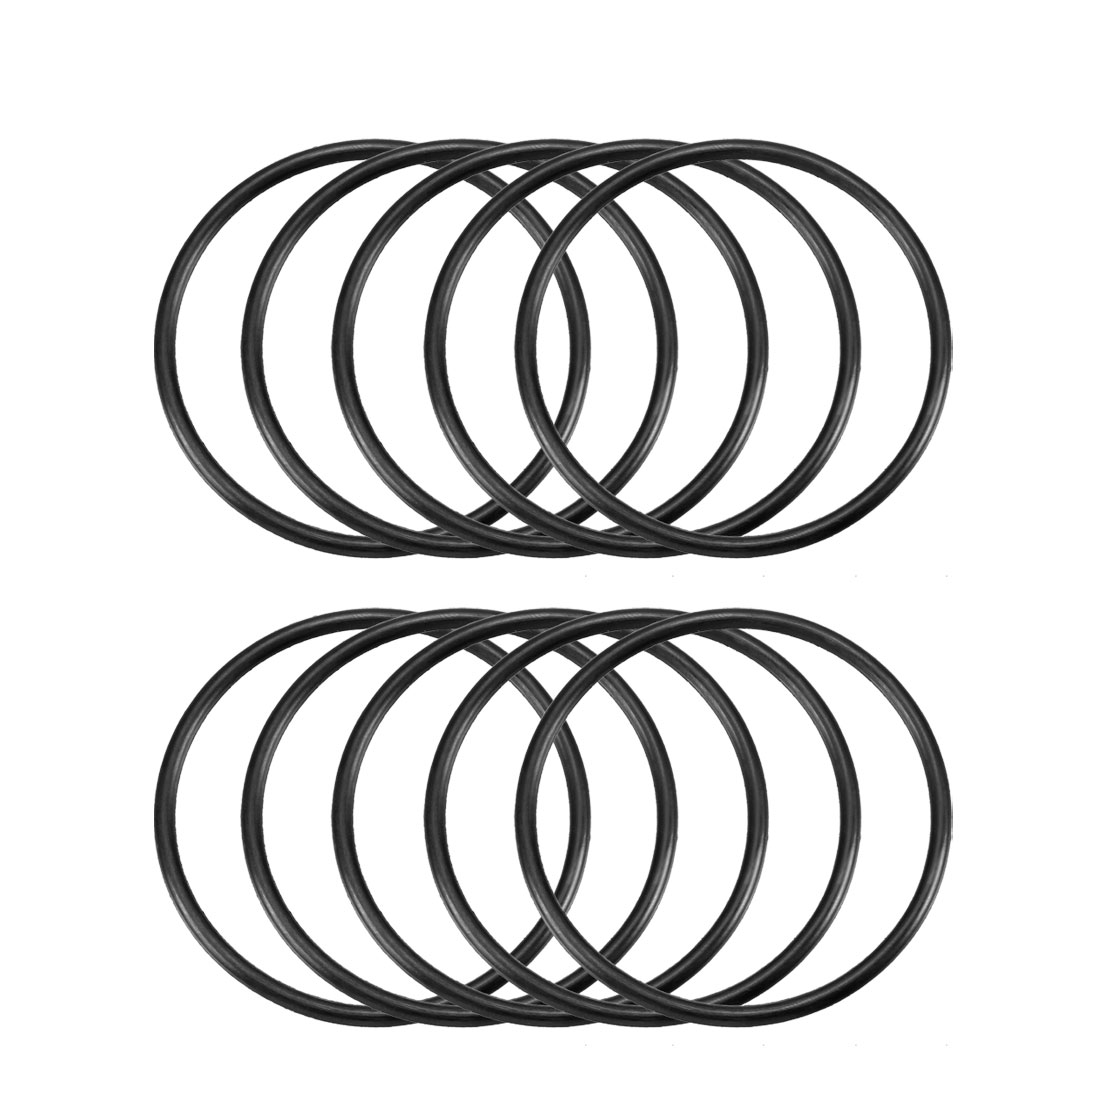 10 Pcs 58mm x 3.1mm Black Silicone O Rings Oil Seals Gaskets